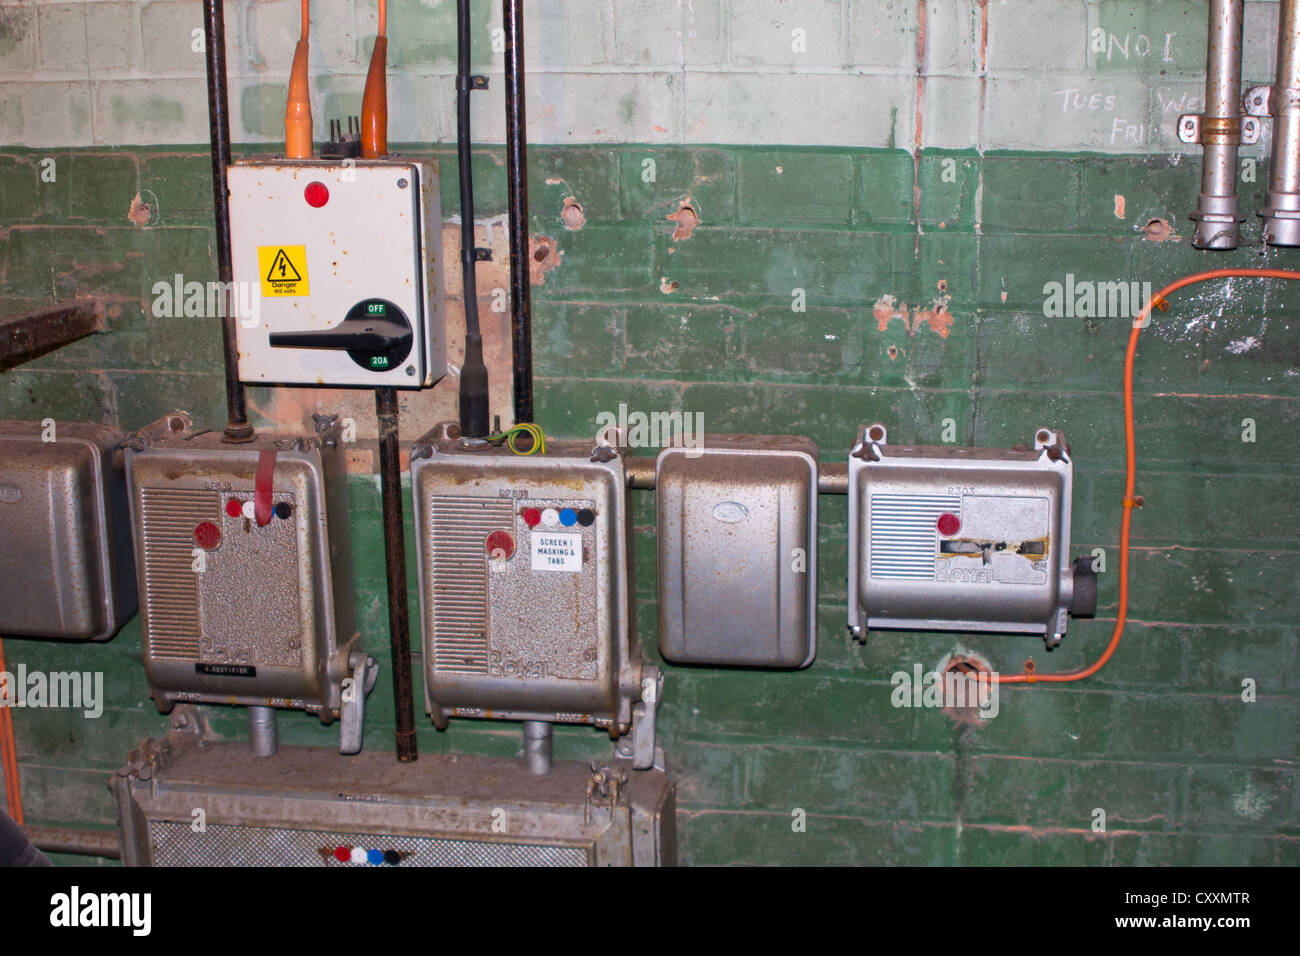 Old Electrical Switches and Fuse Boxes - Stock Image